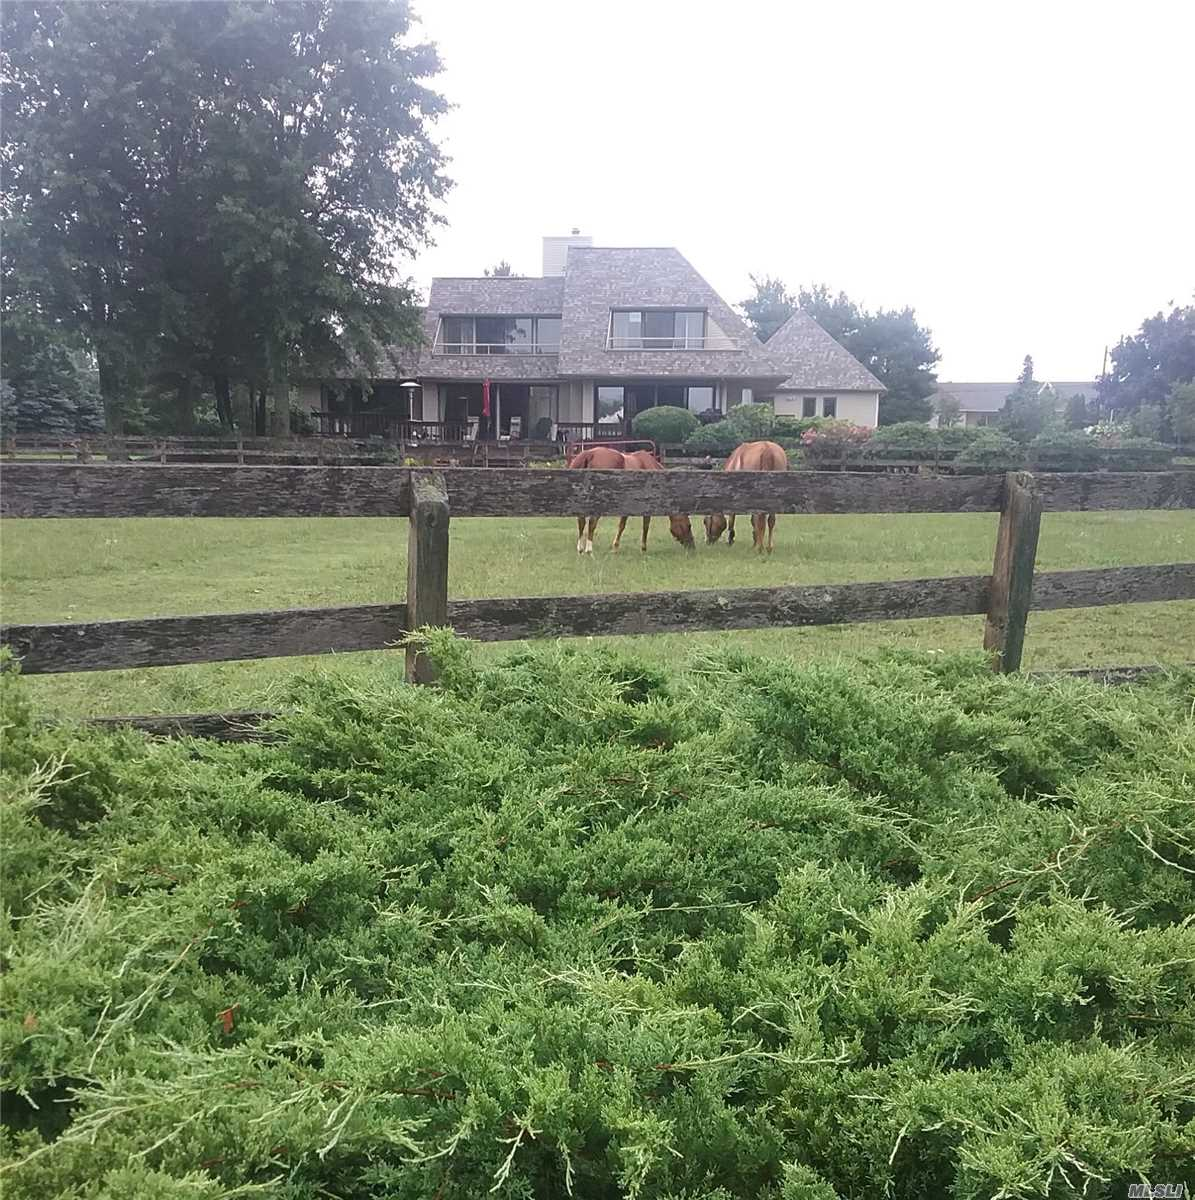 Custom Built 4 Bedroom, 3.5 Bath On 10.2 Acres With Equestrian Facilities. 42'X70' Morton Barn, Six-10X12 Stalls W/Windows, Intermatic Stall Lighting System, 4 Doorways, Insulated Tack/Aid Room Etc. 10 Ton+ Hay And Misc. Storage Plus  80'X120'X30' Indoor Training Arena With Sunlight Interior On E, W, And So. Exposures.  Plus 120' Round Pen + 40' Walled Round Breaking Pen Plus 7 Exterior Light Systems, 4 Exterior Water Systems, Entire Acreage Fenced/Cross Fenced.